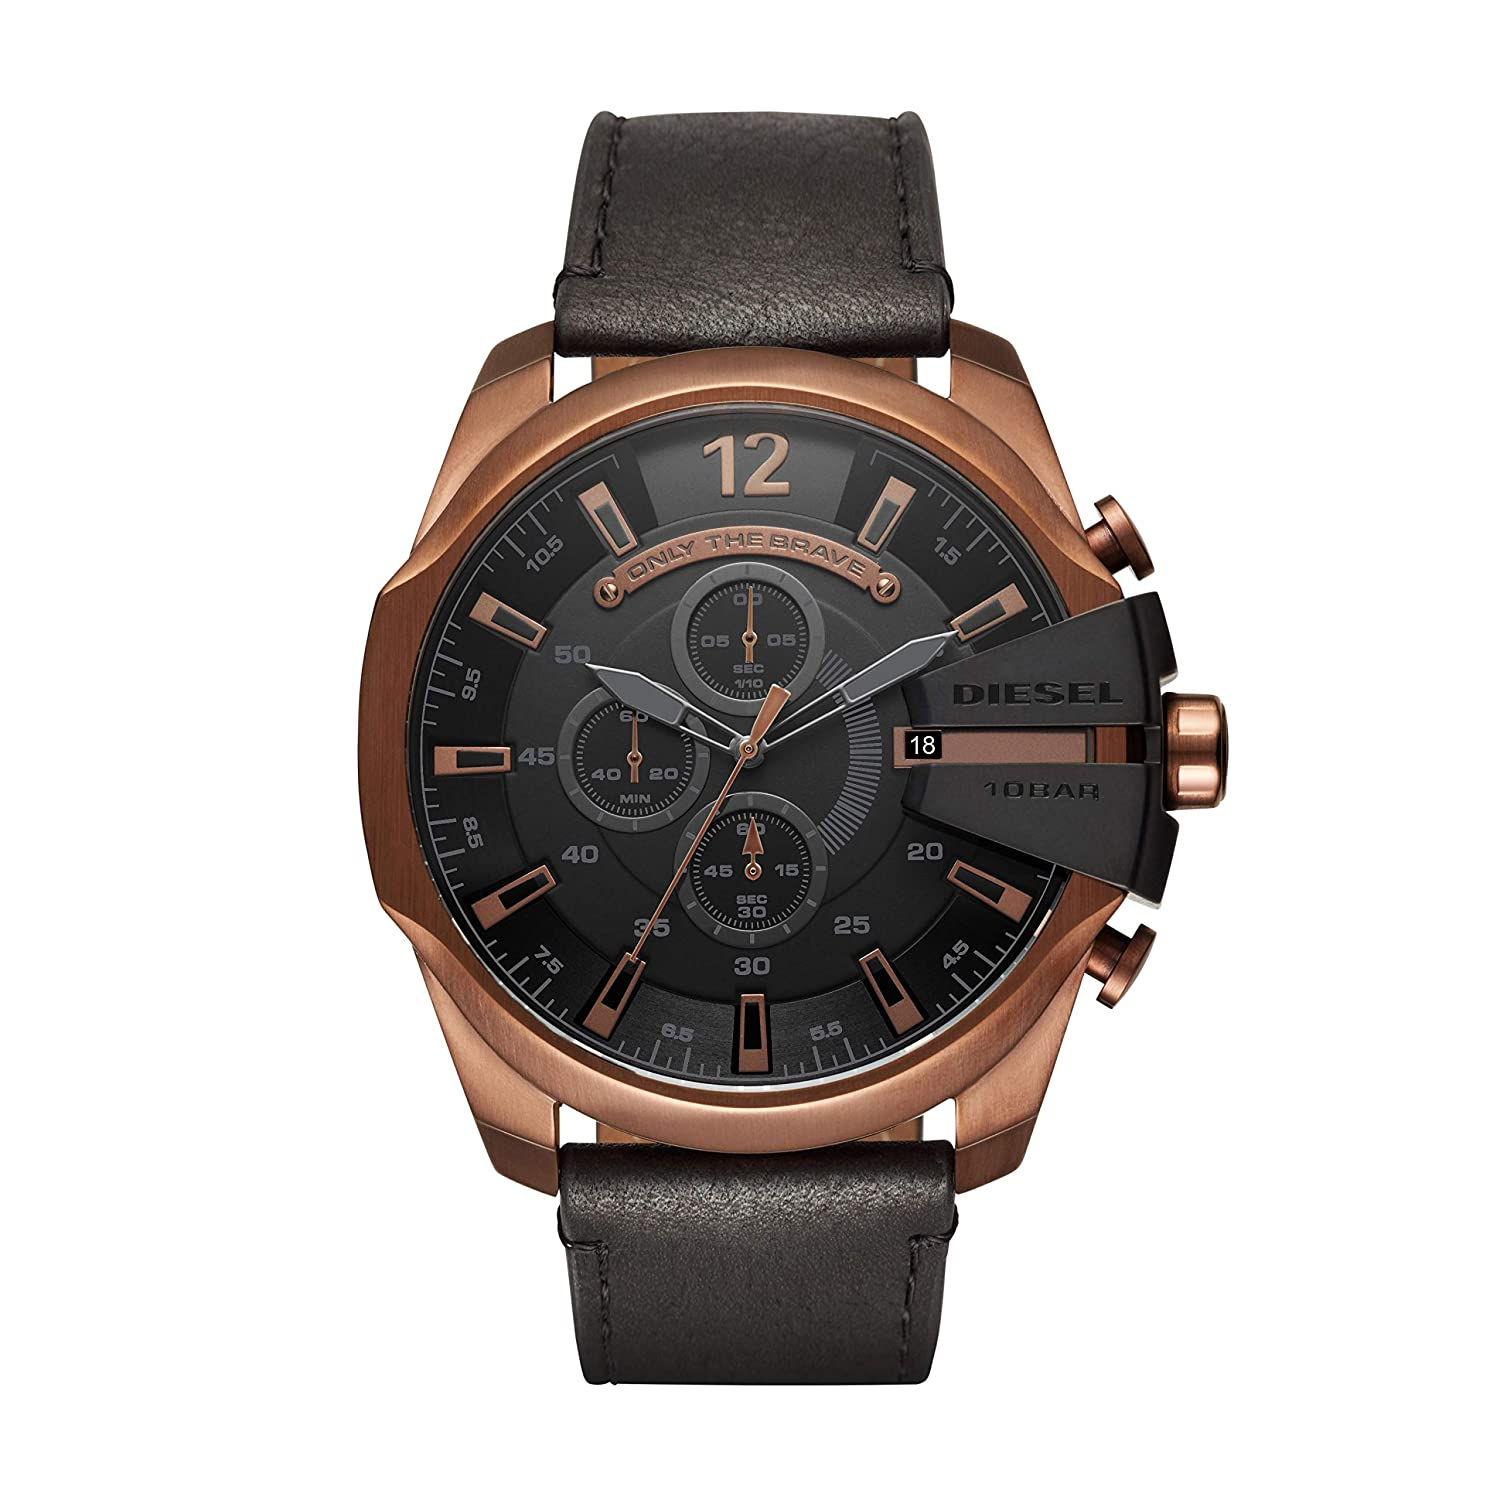 a7243263d Amazon.com: Diesel Men's Mega Chief Quartz Stainless Steel and Leather  Chronograph Watch, Color: Rose Gold-Tone, Black (Model: DZ4459): Diesel:  Watches